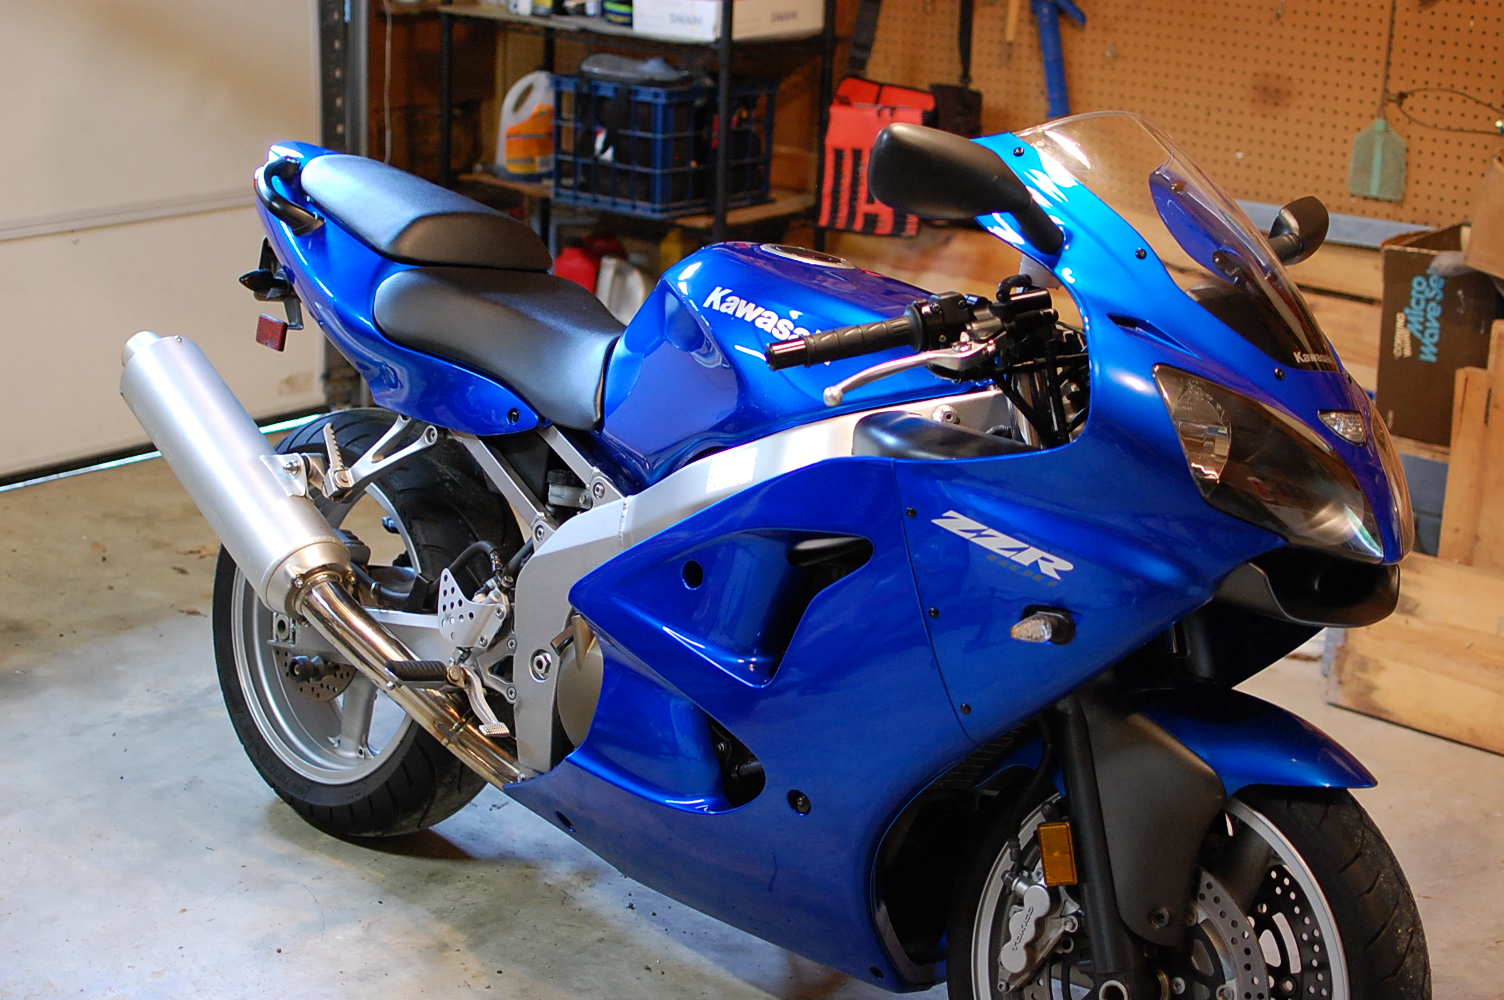 2008 Kawasaki ZZR600 (East Virginia) - Sportbikes.net